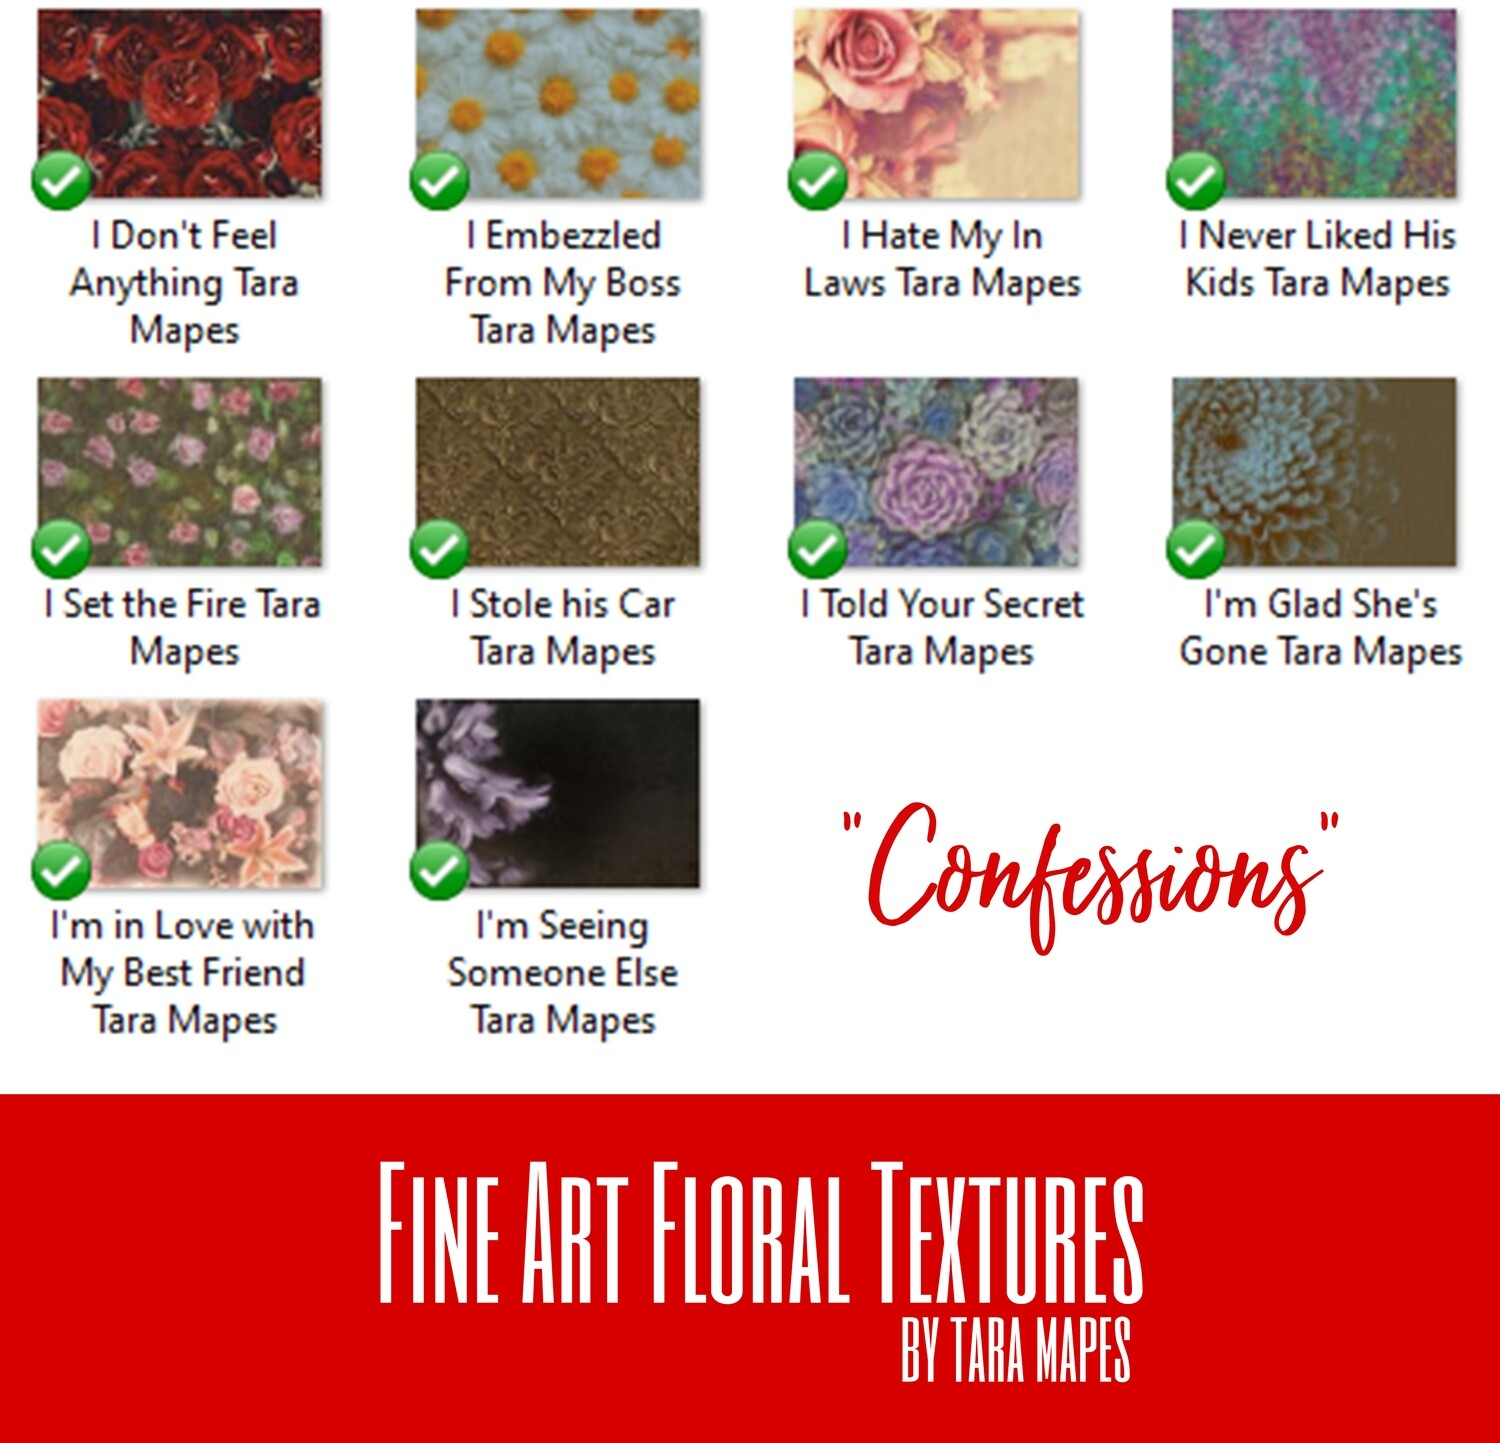 10 Old Masters Floral Textures -Floral Backdrops - Digital Backgrounds - CONFESSIONS Photoshop Overlays by Tara Mapes